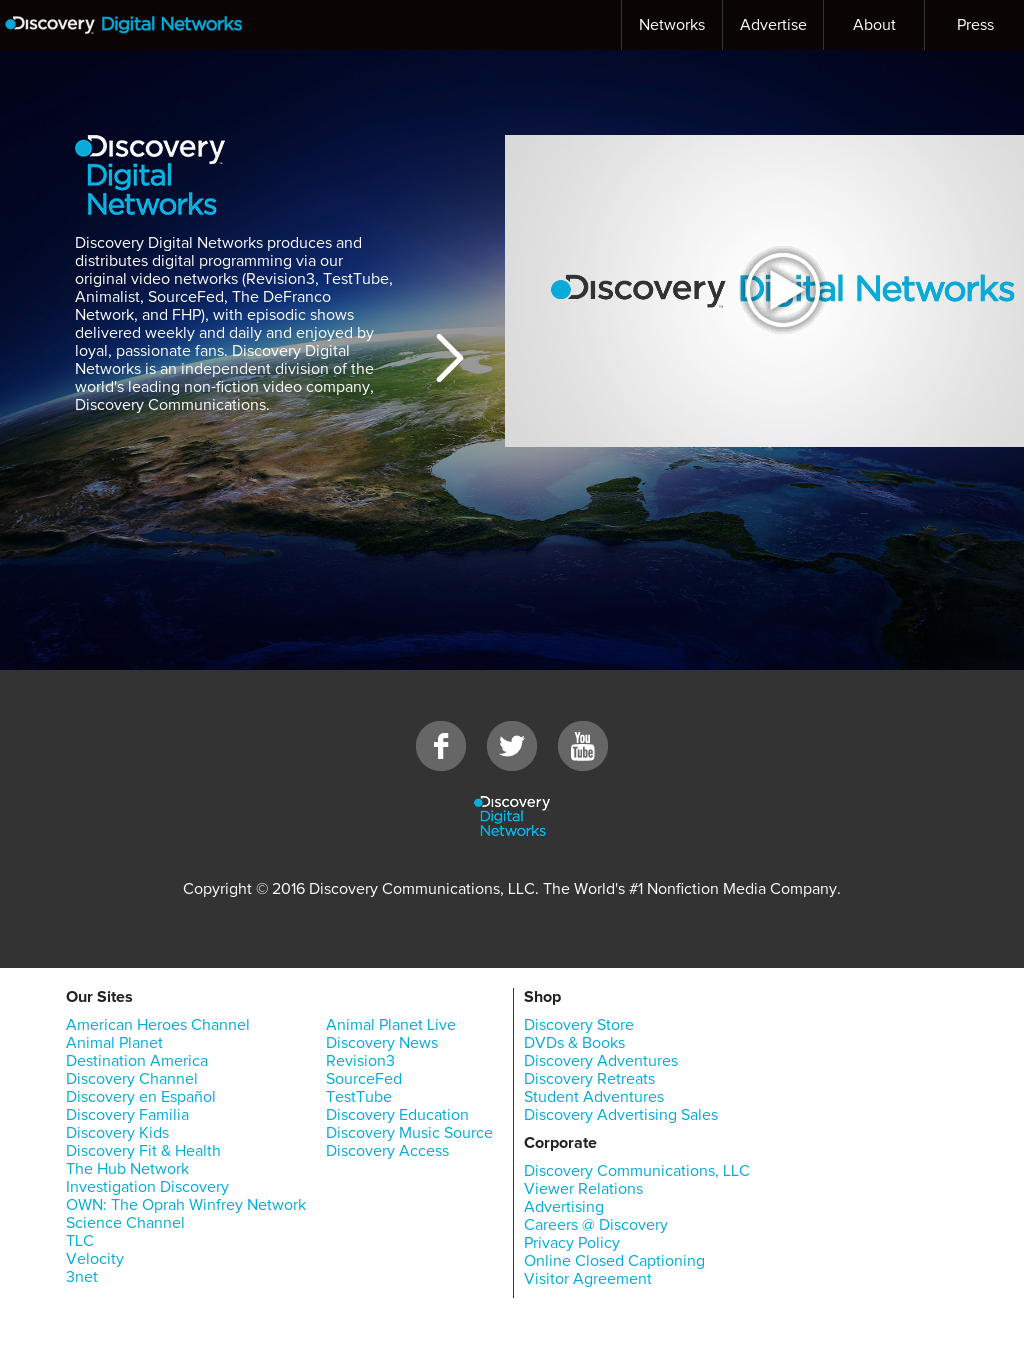 Discovery Digital Networks Competitors, Revenue and Employees